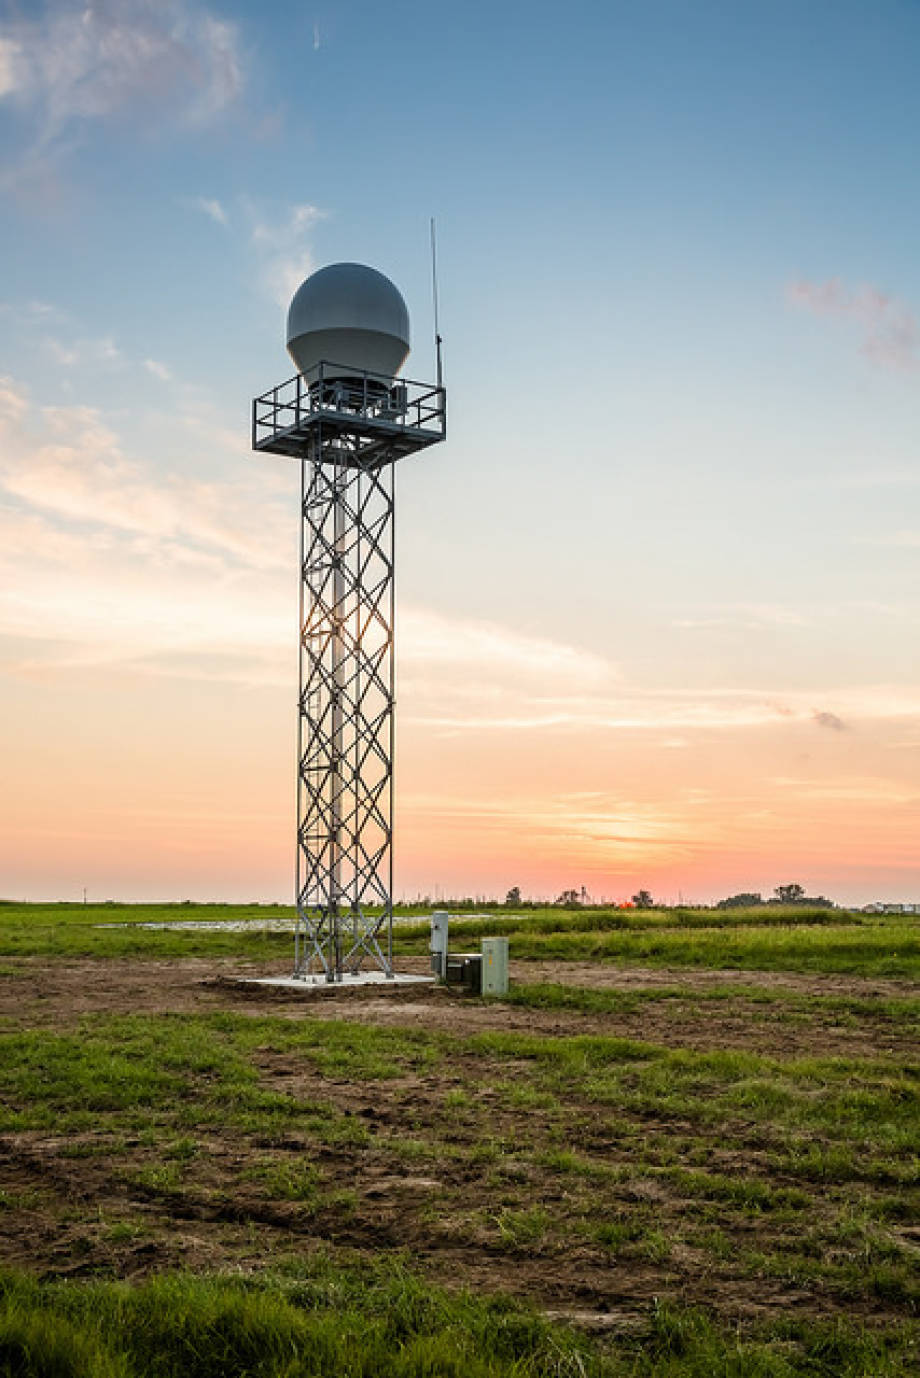 The new Doppler weather radar was installed in late June at the University of Missouri College of Agriculture, Food and Natural Resources' Jefferson Farm and Garden.